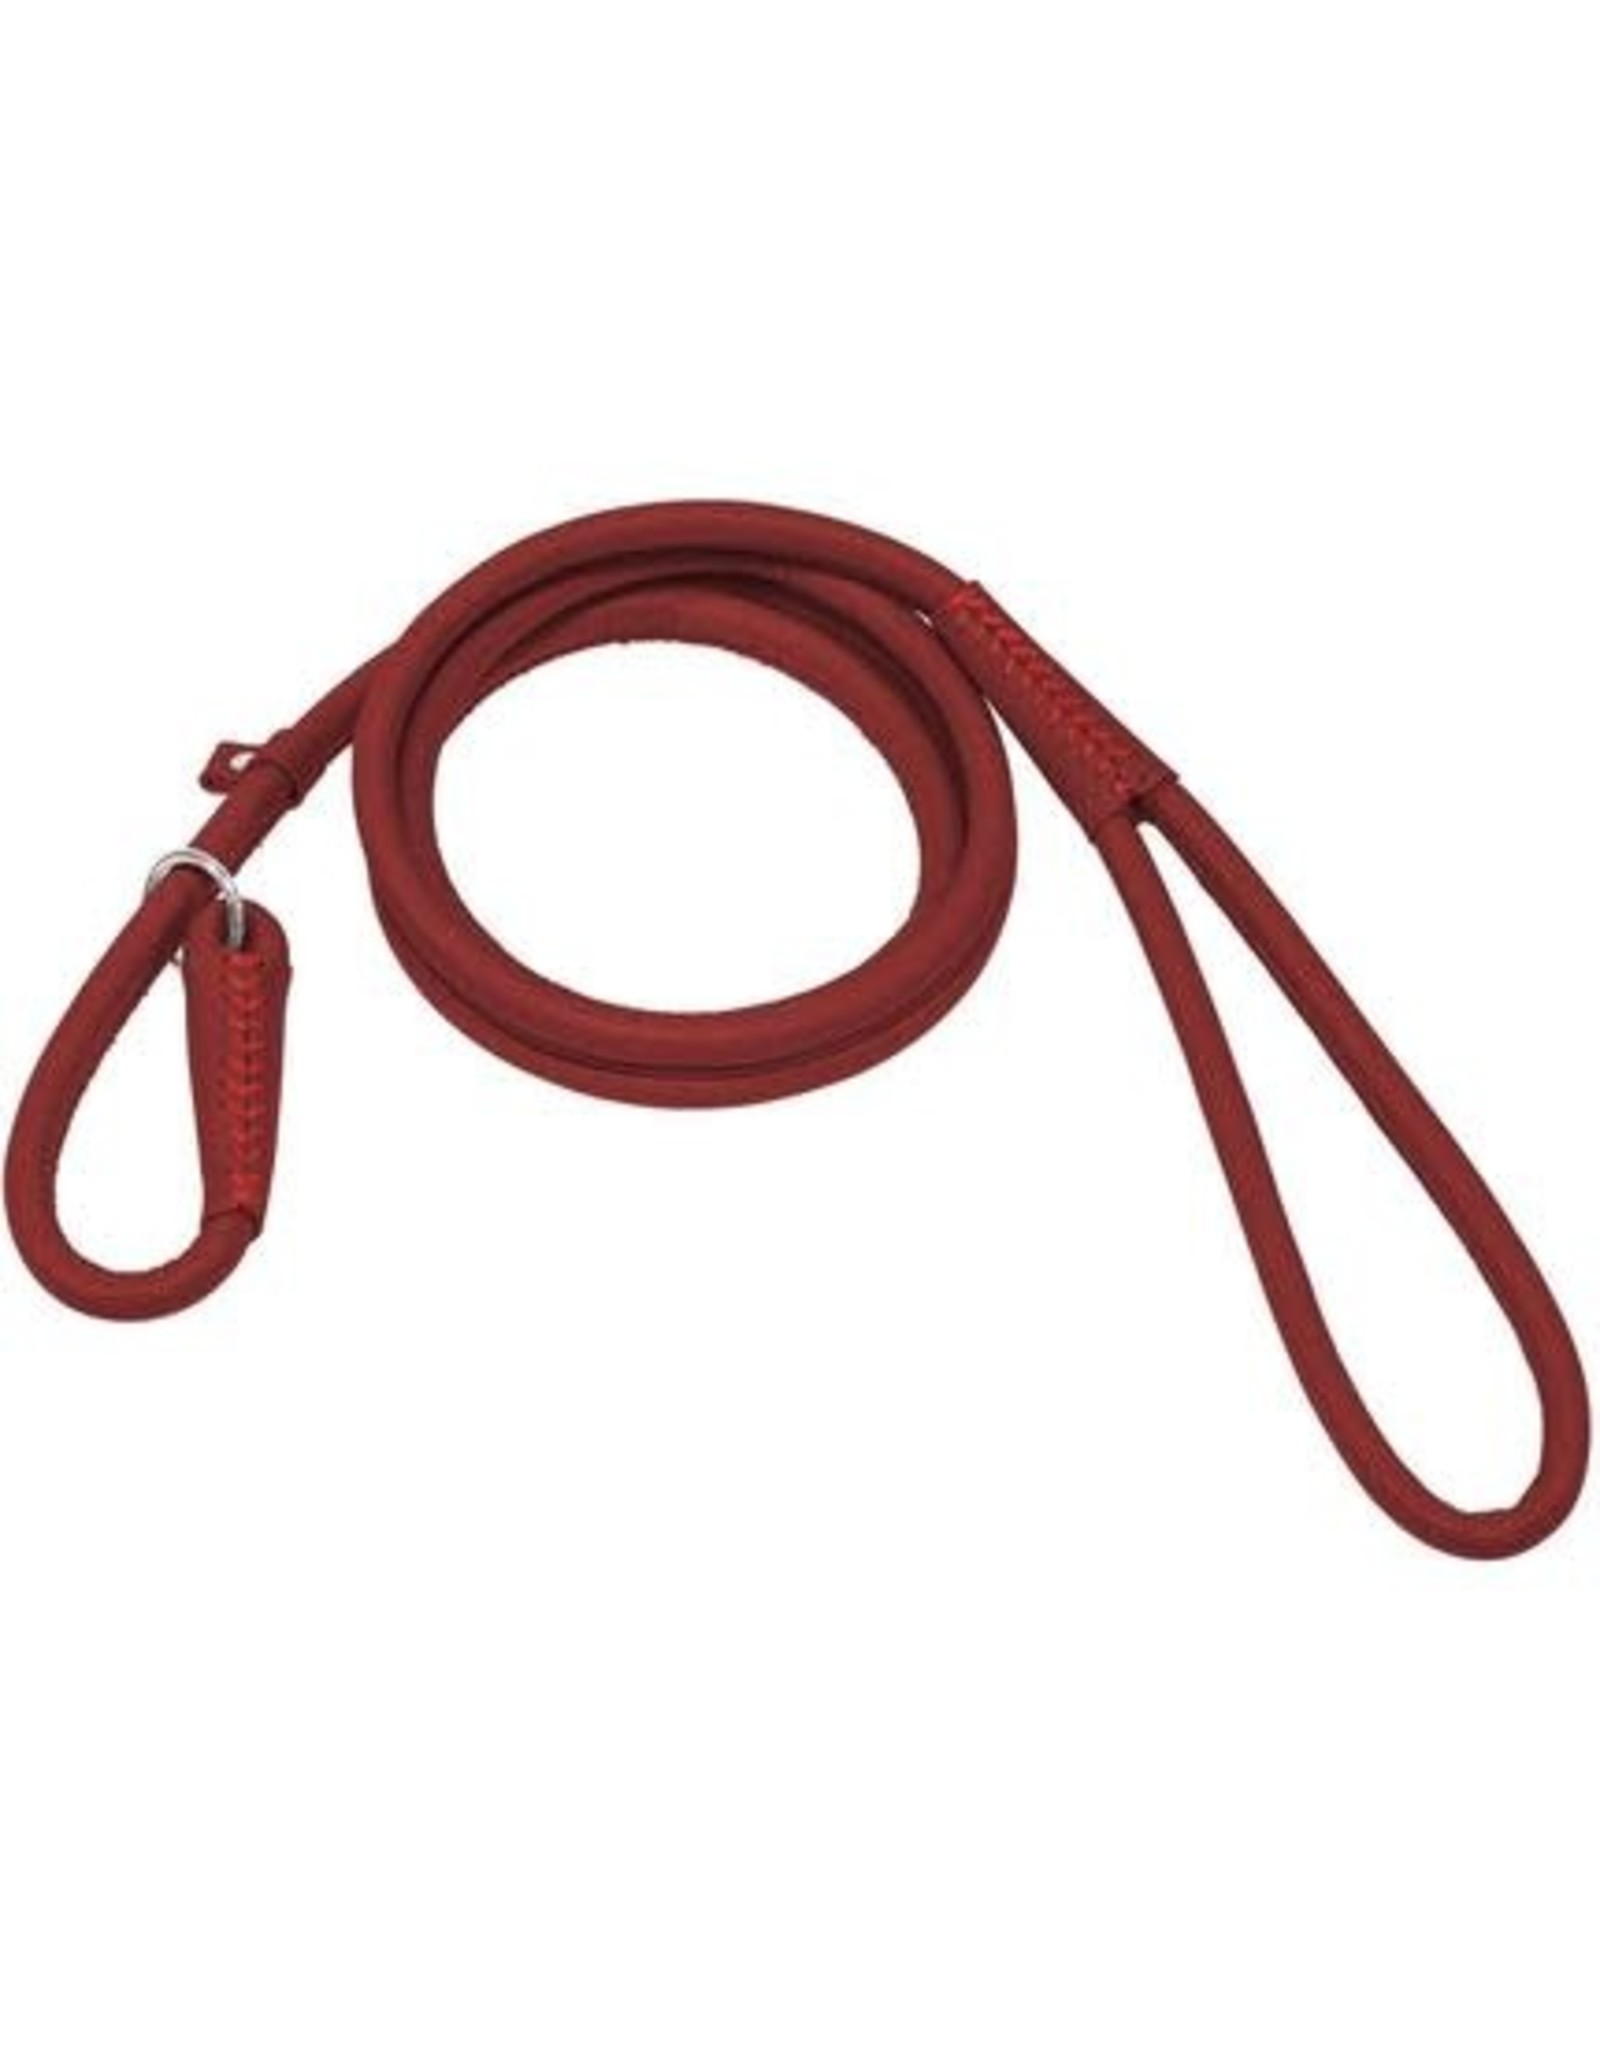 "Dogline Dogline - Round Leather Slip Lead 1/4"" X 72"" -"